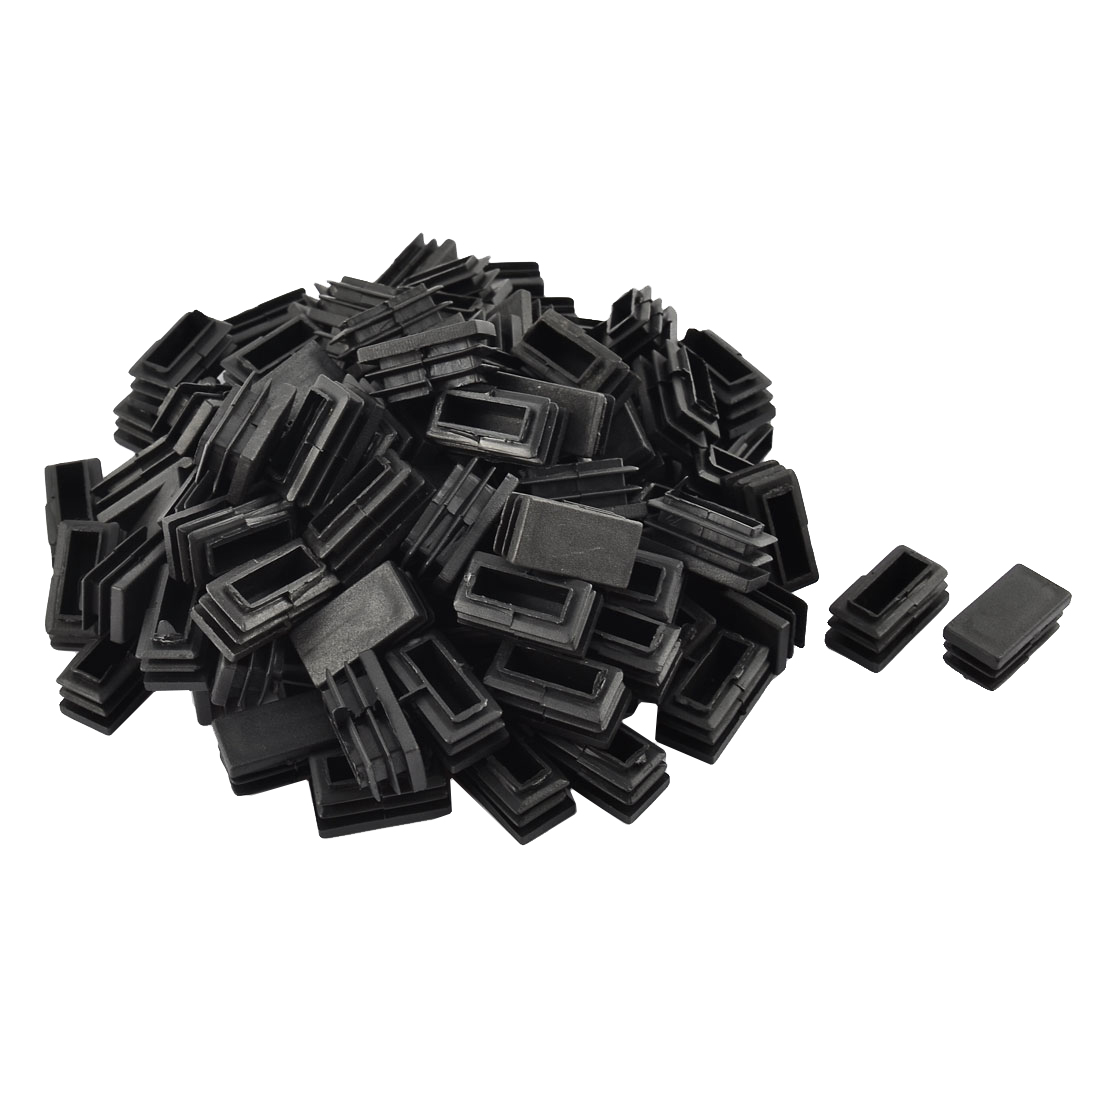 Home Office Plastic Rectangular Shaped Chair Leg Feet Tube Insert Black 102 Pcs